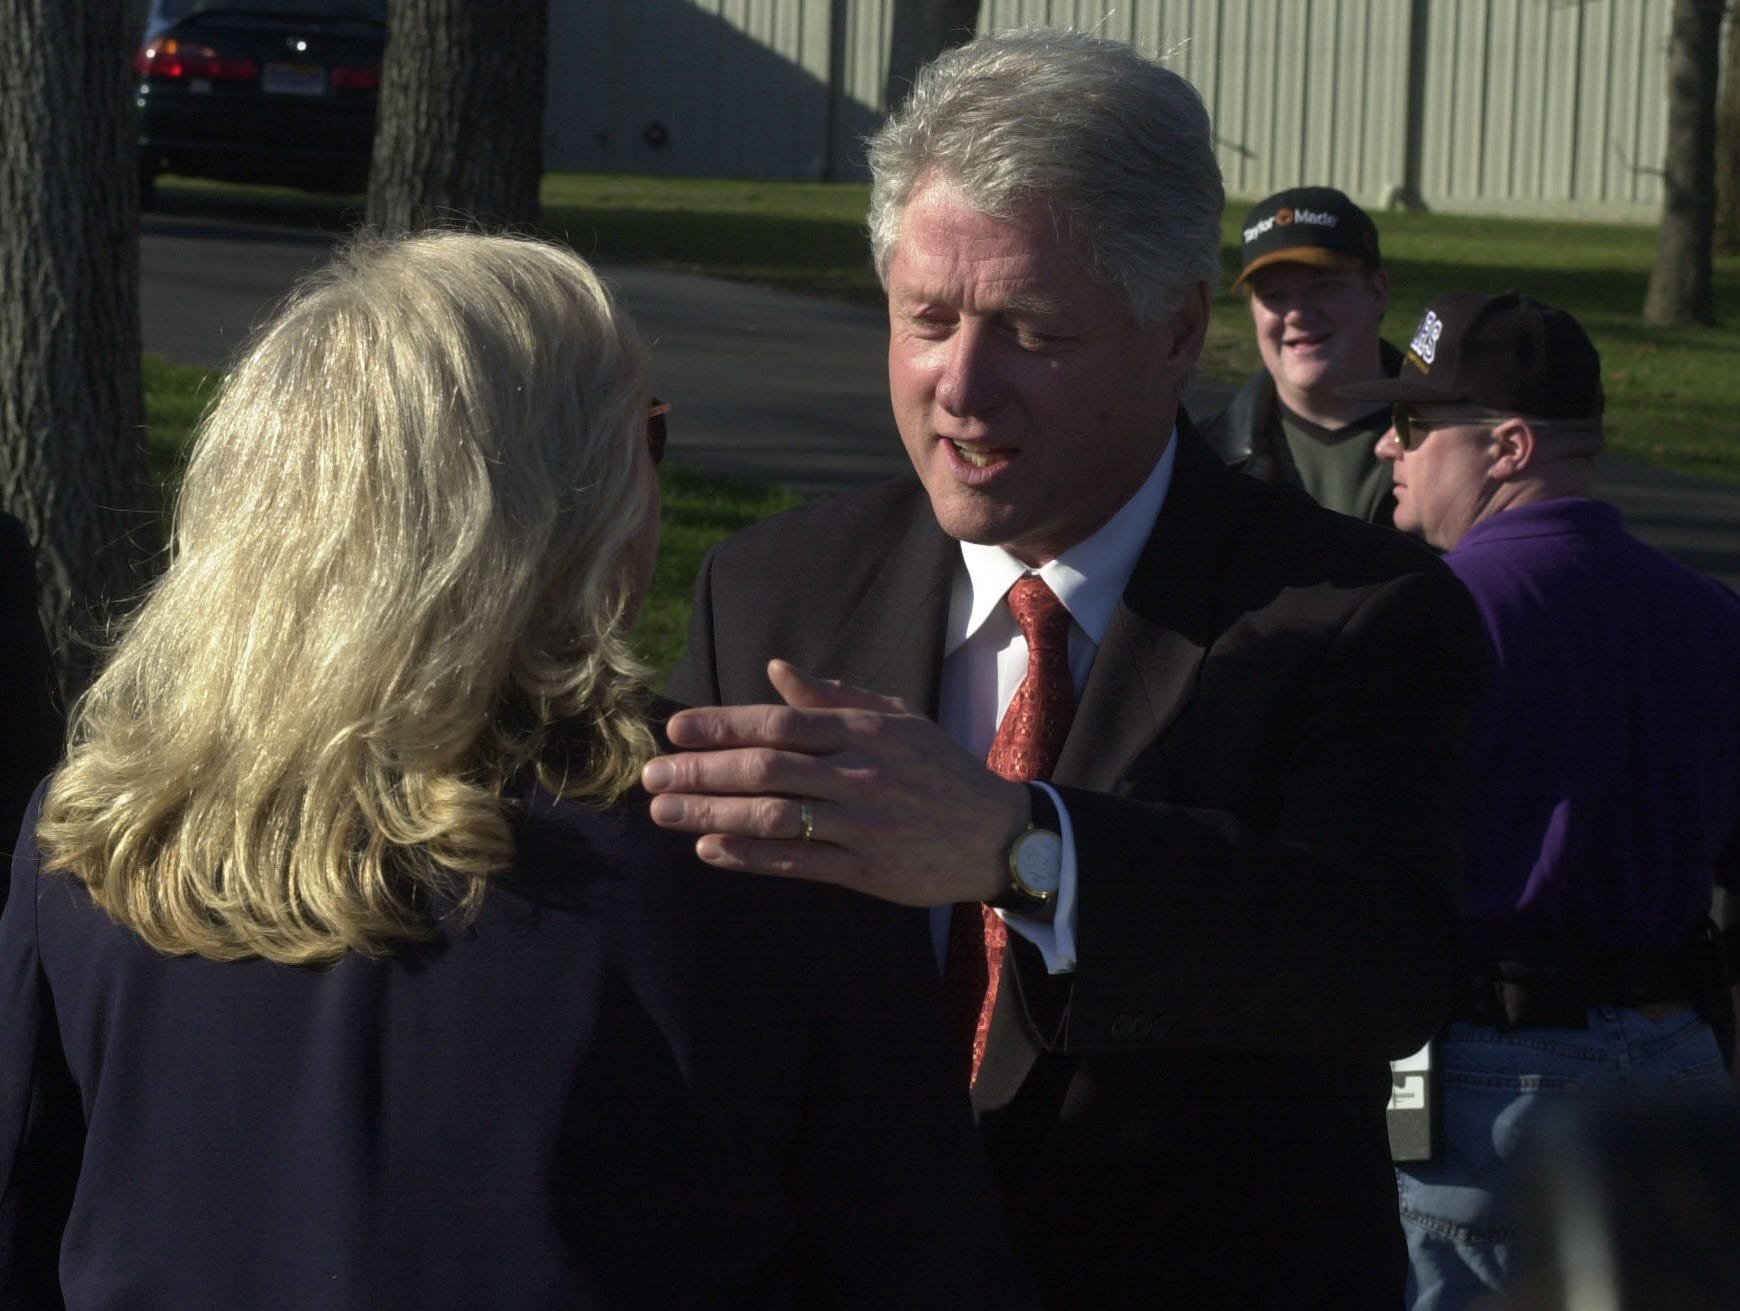 Former President Bill Clinton greets Gatlinburg resident Shayne Henderson at the Gatlinburg-Pigeon Forge Airport in Sevierville during a brief stop in East Tennessee.